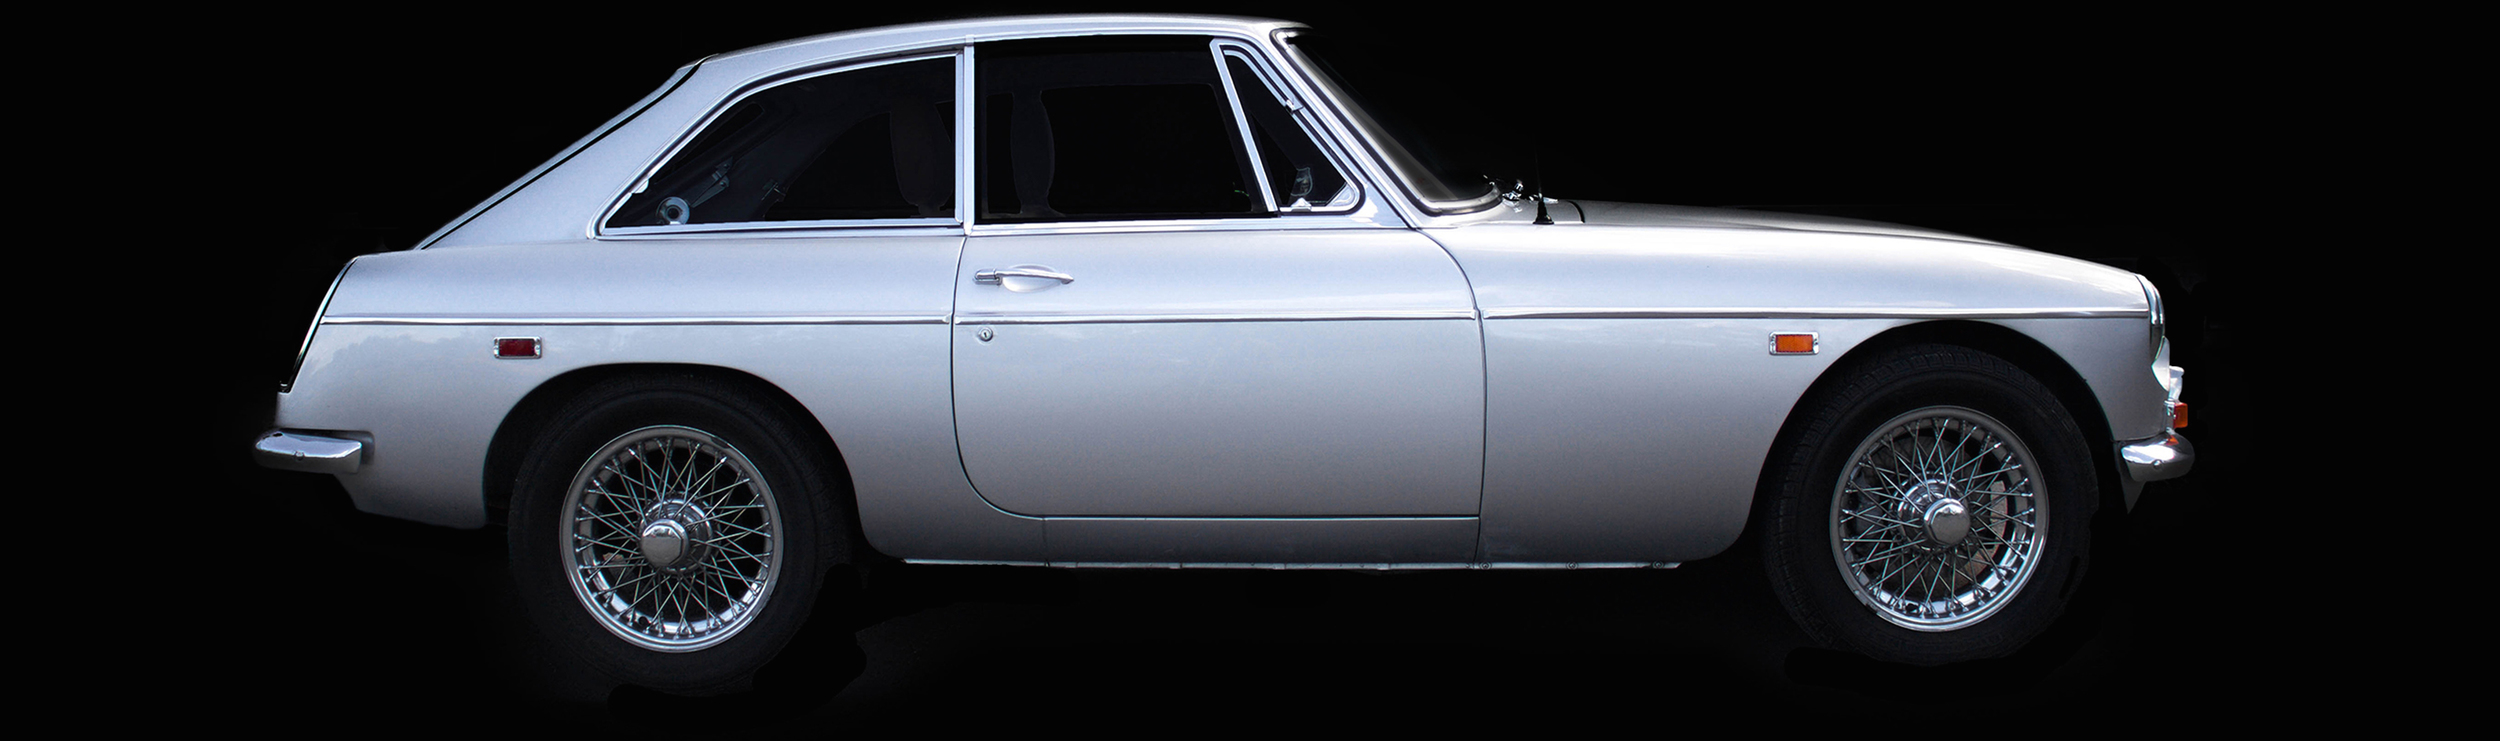 Voiture-ancienne-MGC-GT-1969